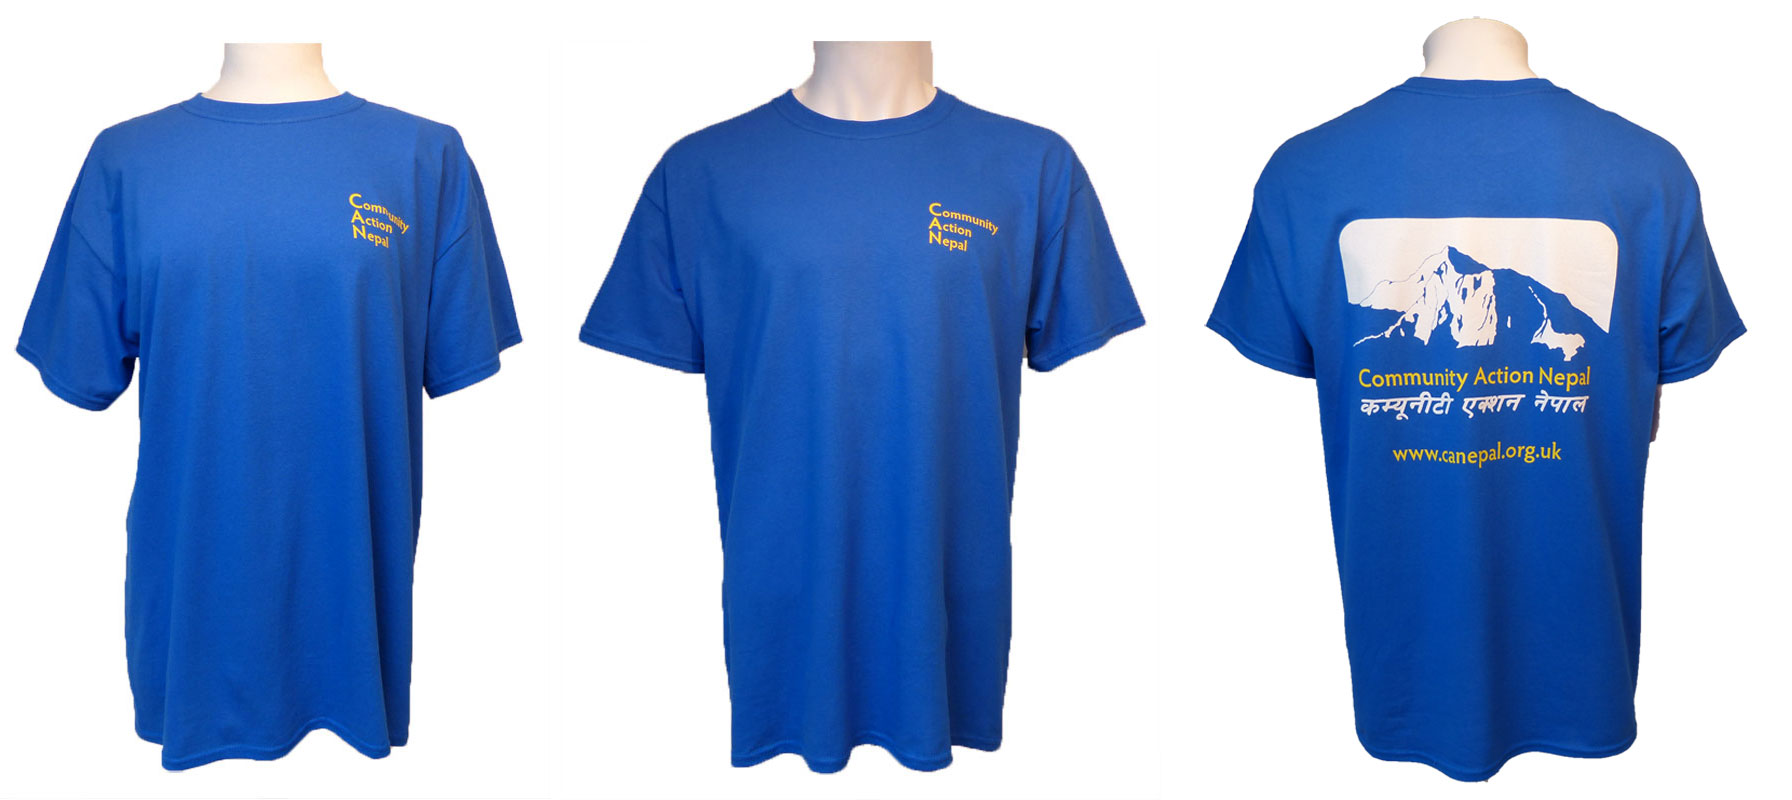 T-SHIRT - available in sizes, small, medium, large and extra large. Cost £8.00 + £3.50 p&p